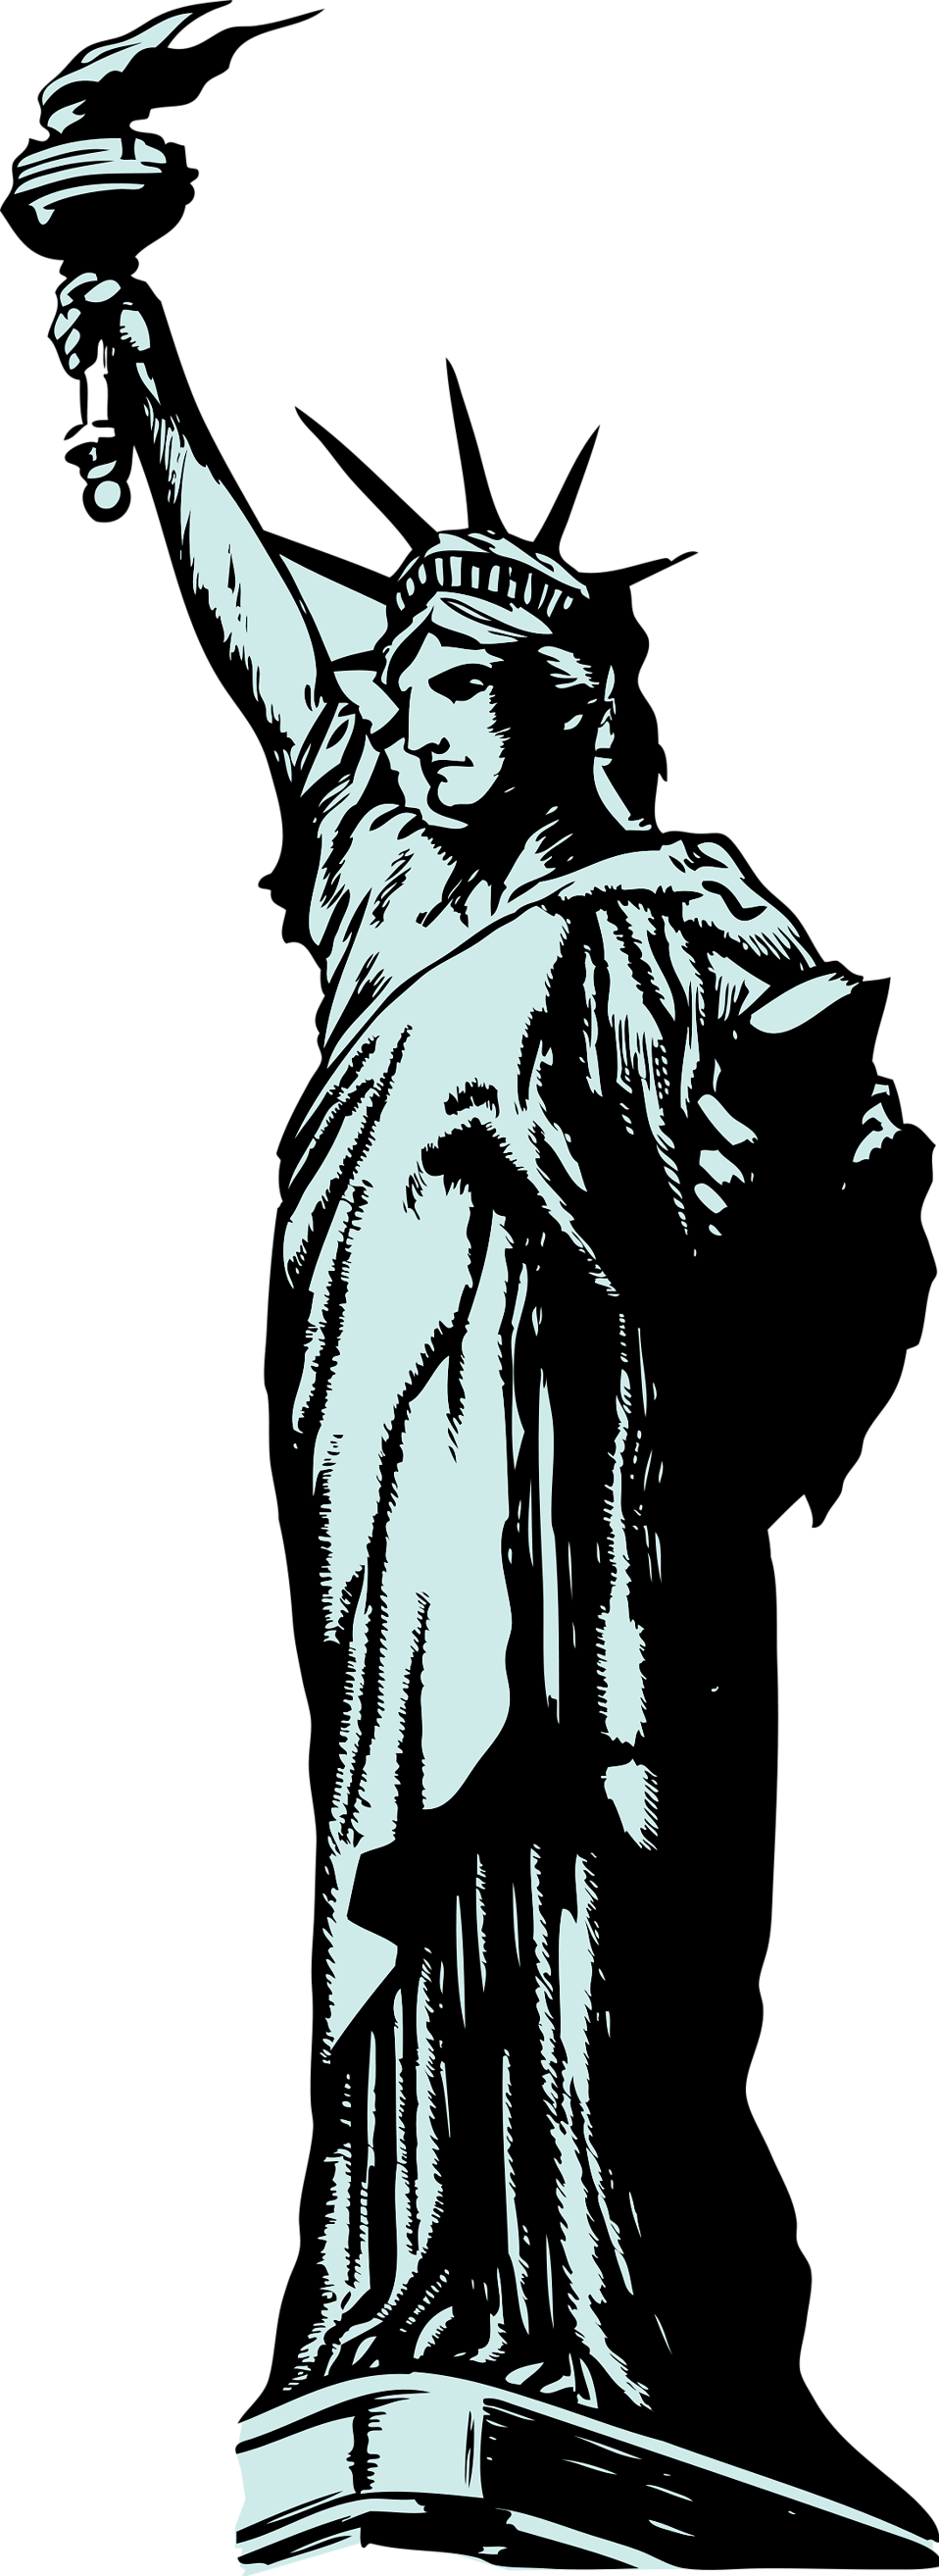 Statue of liberty crown clipart banner download Statue Clipart at GetDrawings.com | Free for personal use Statue ... banner download